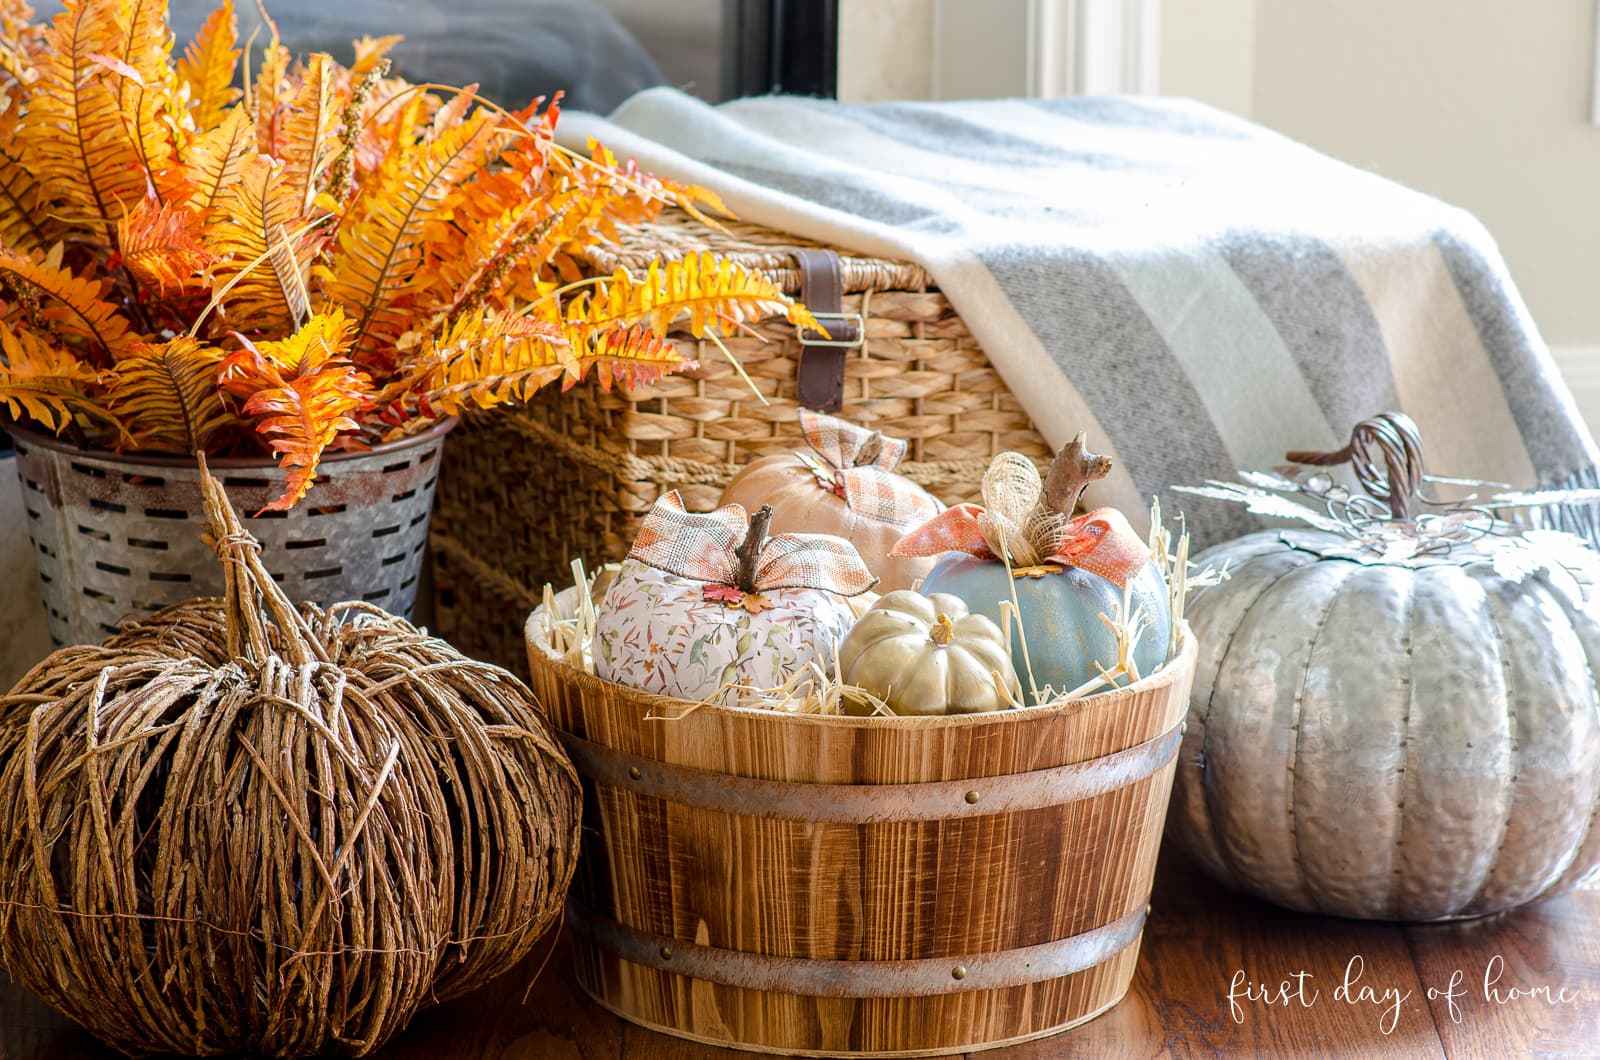 Fall decor by fireplace with bushel basket, woven pumpkins and metal pumpkin decor